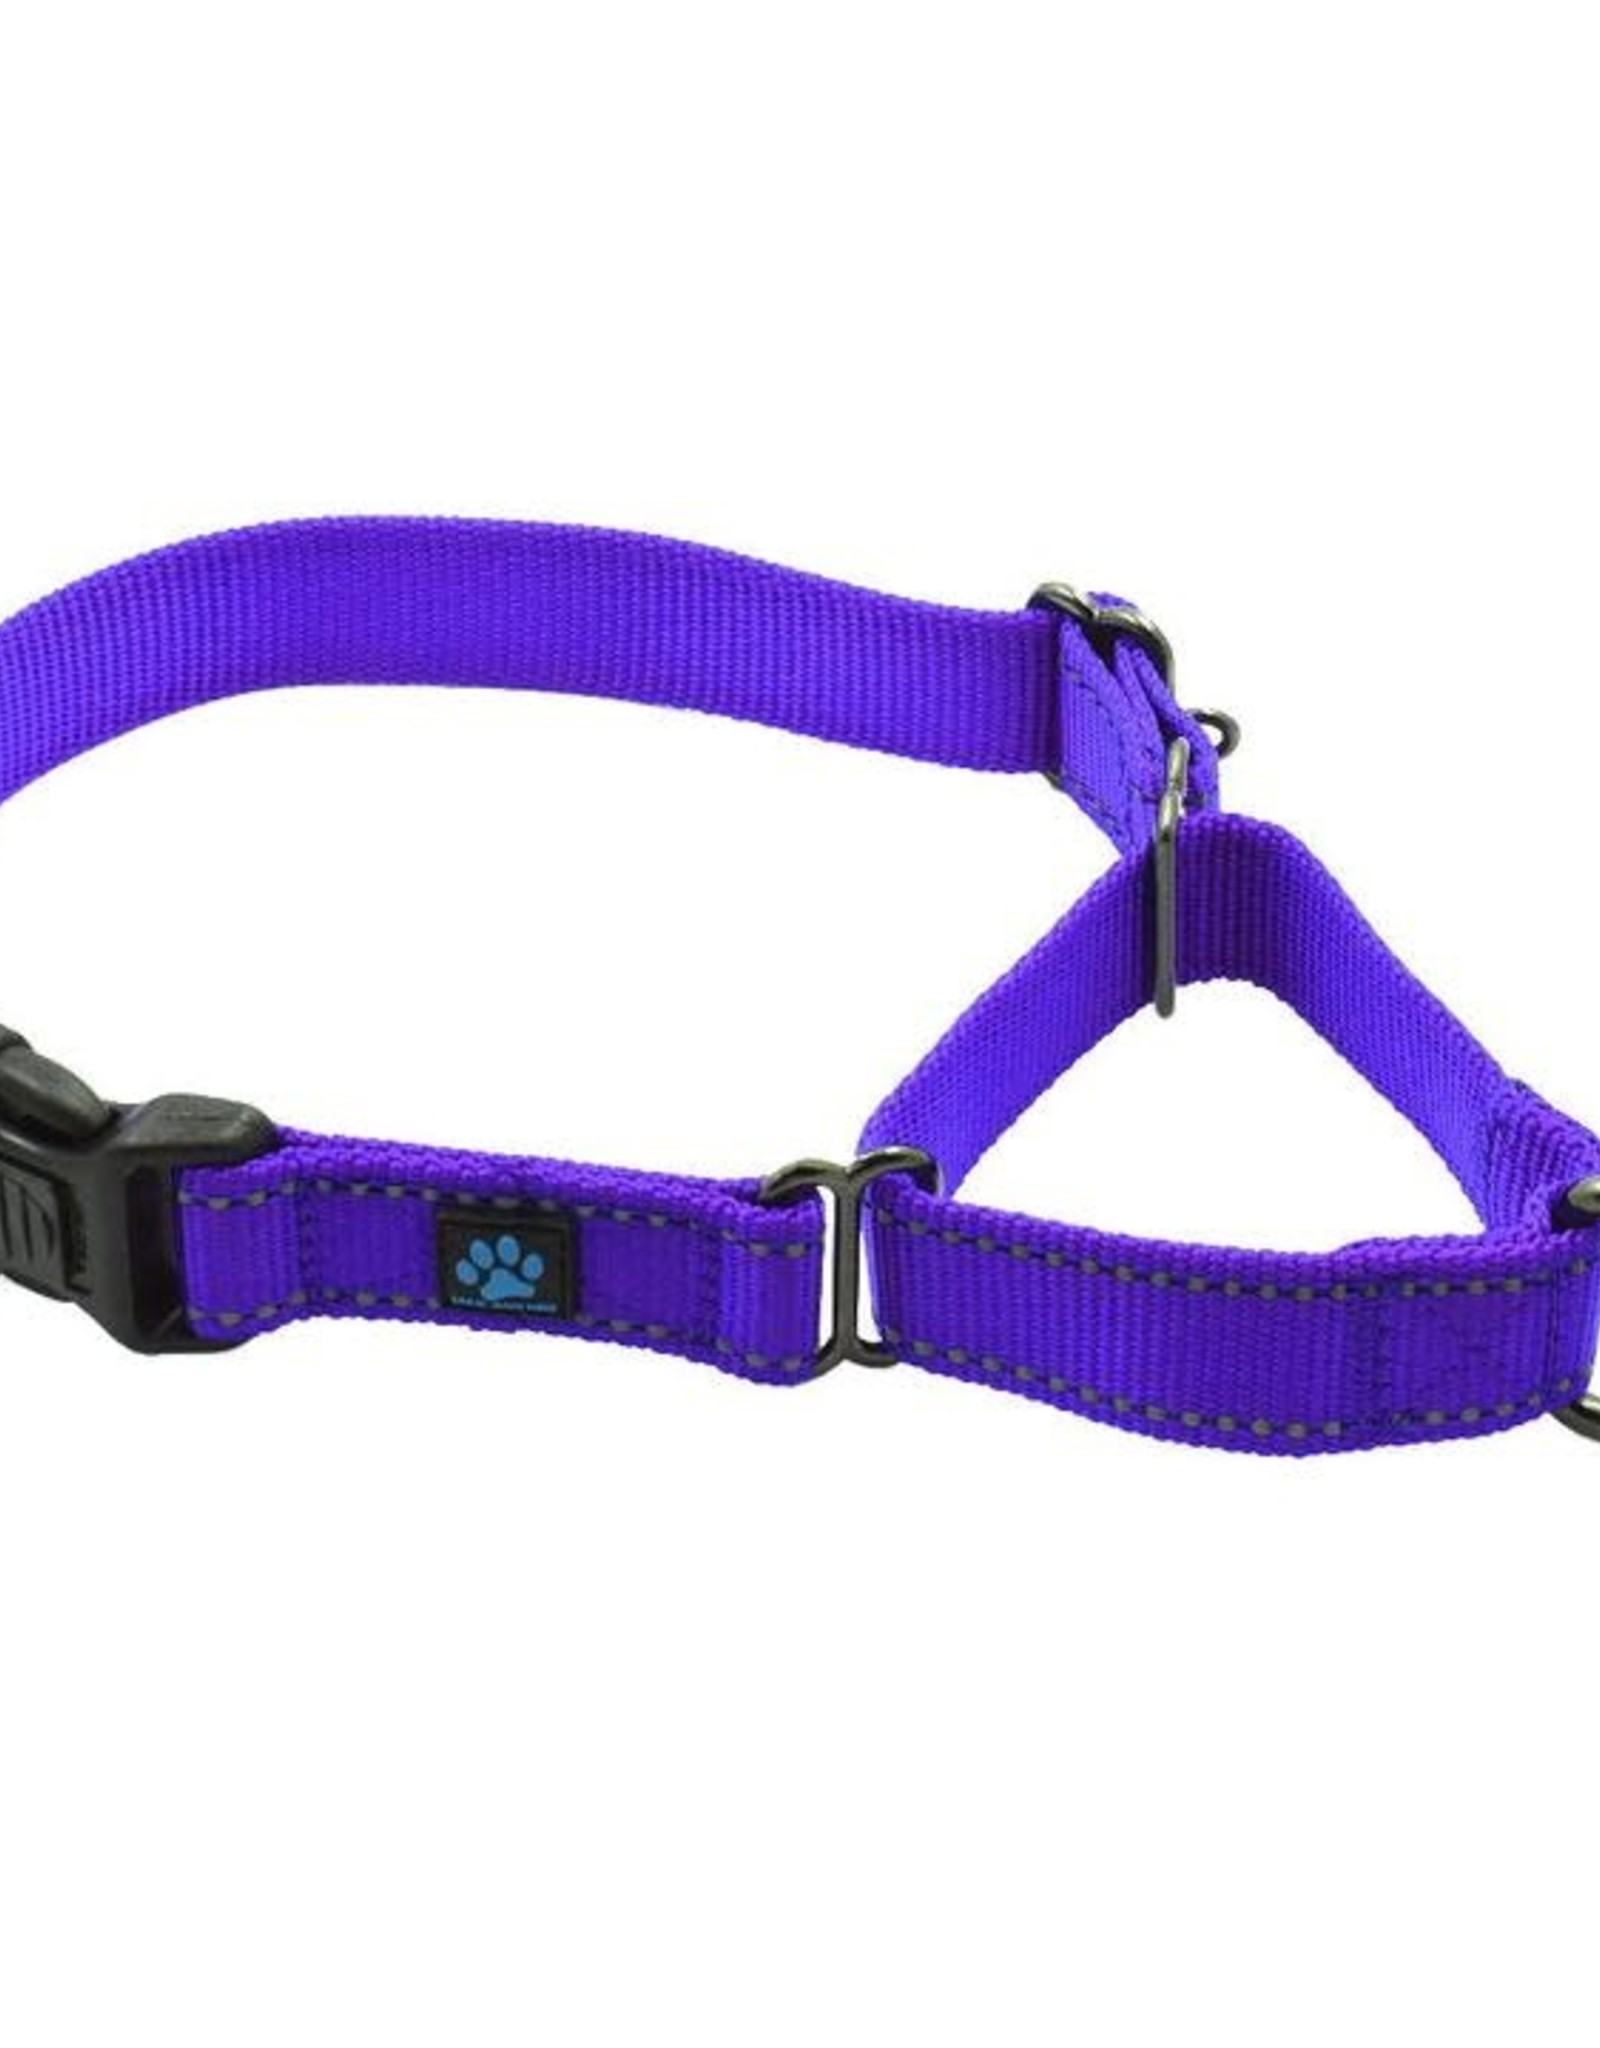 Max & Neo Nylon Martingale- Lg Purple